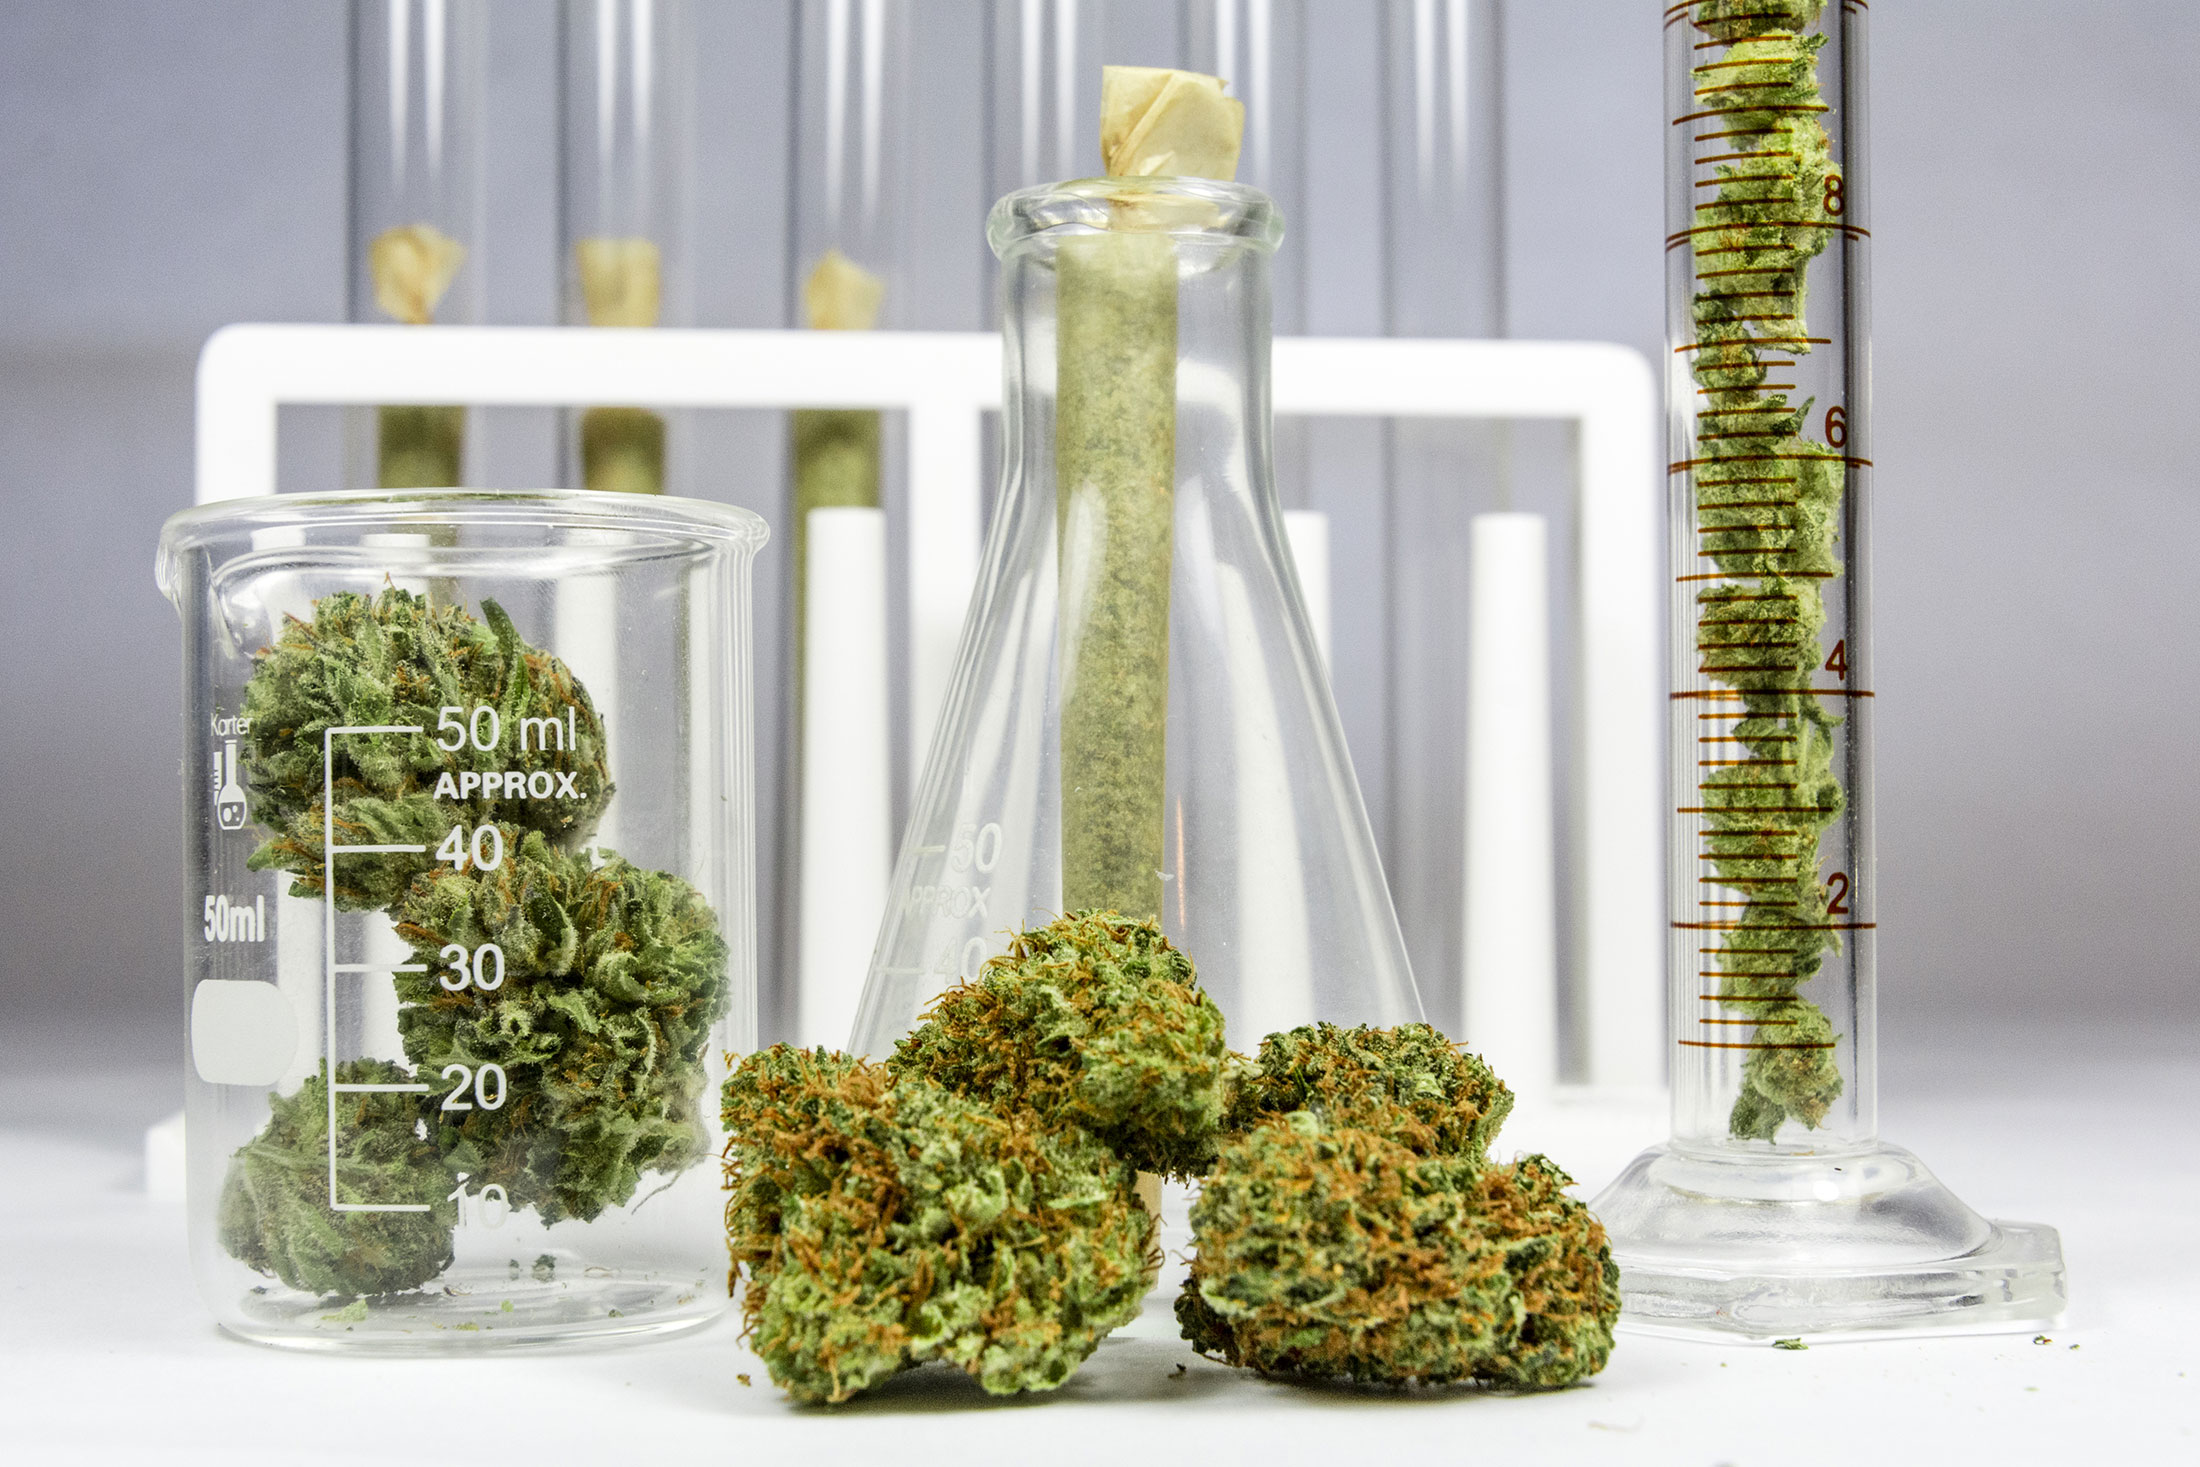 California Cannabis Testing Labs